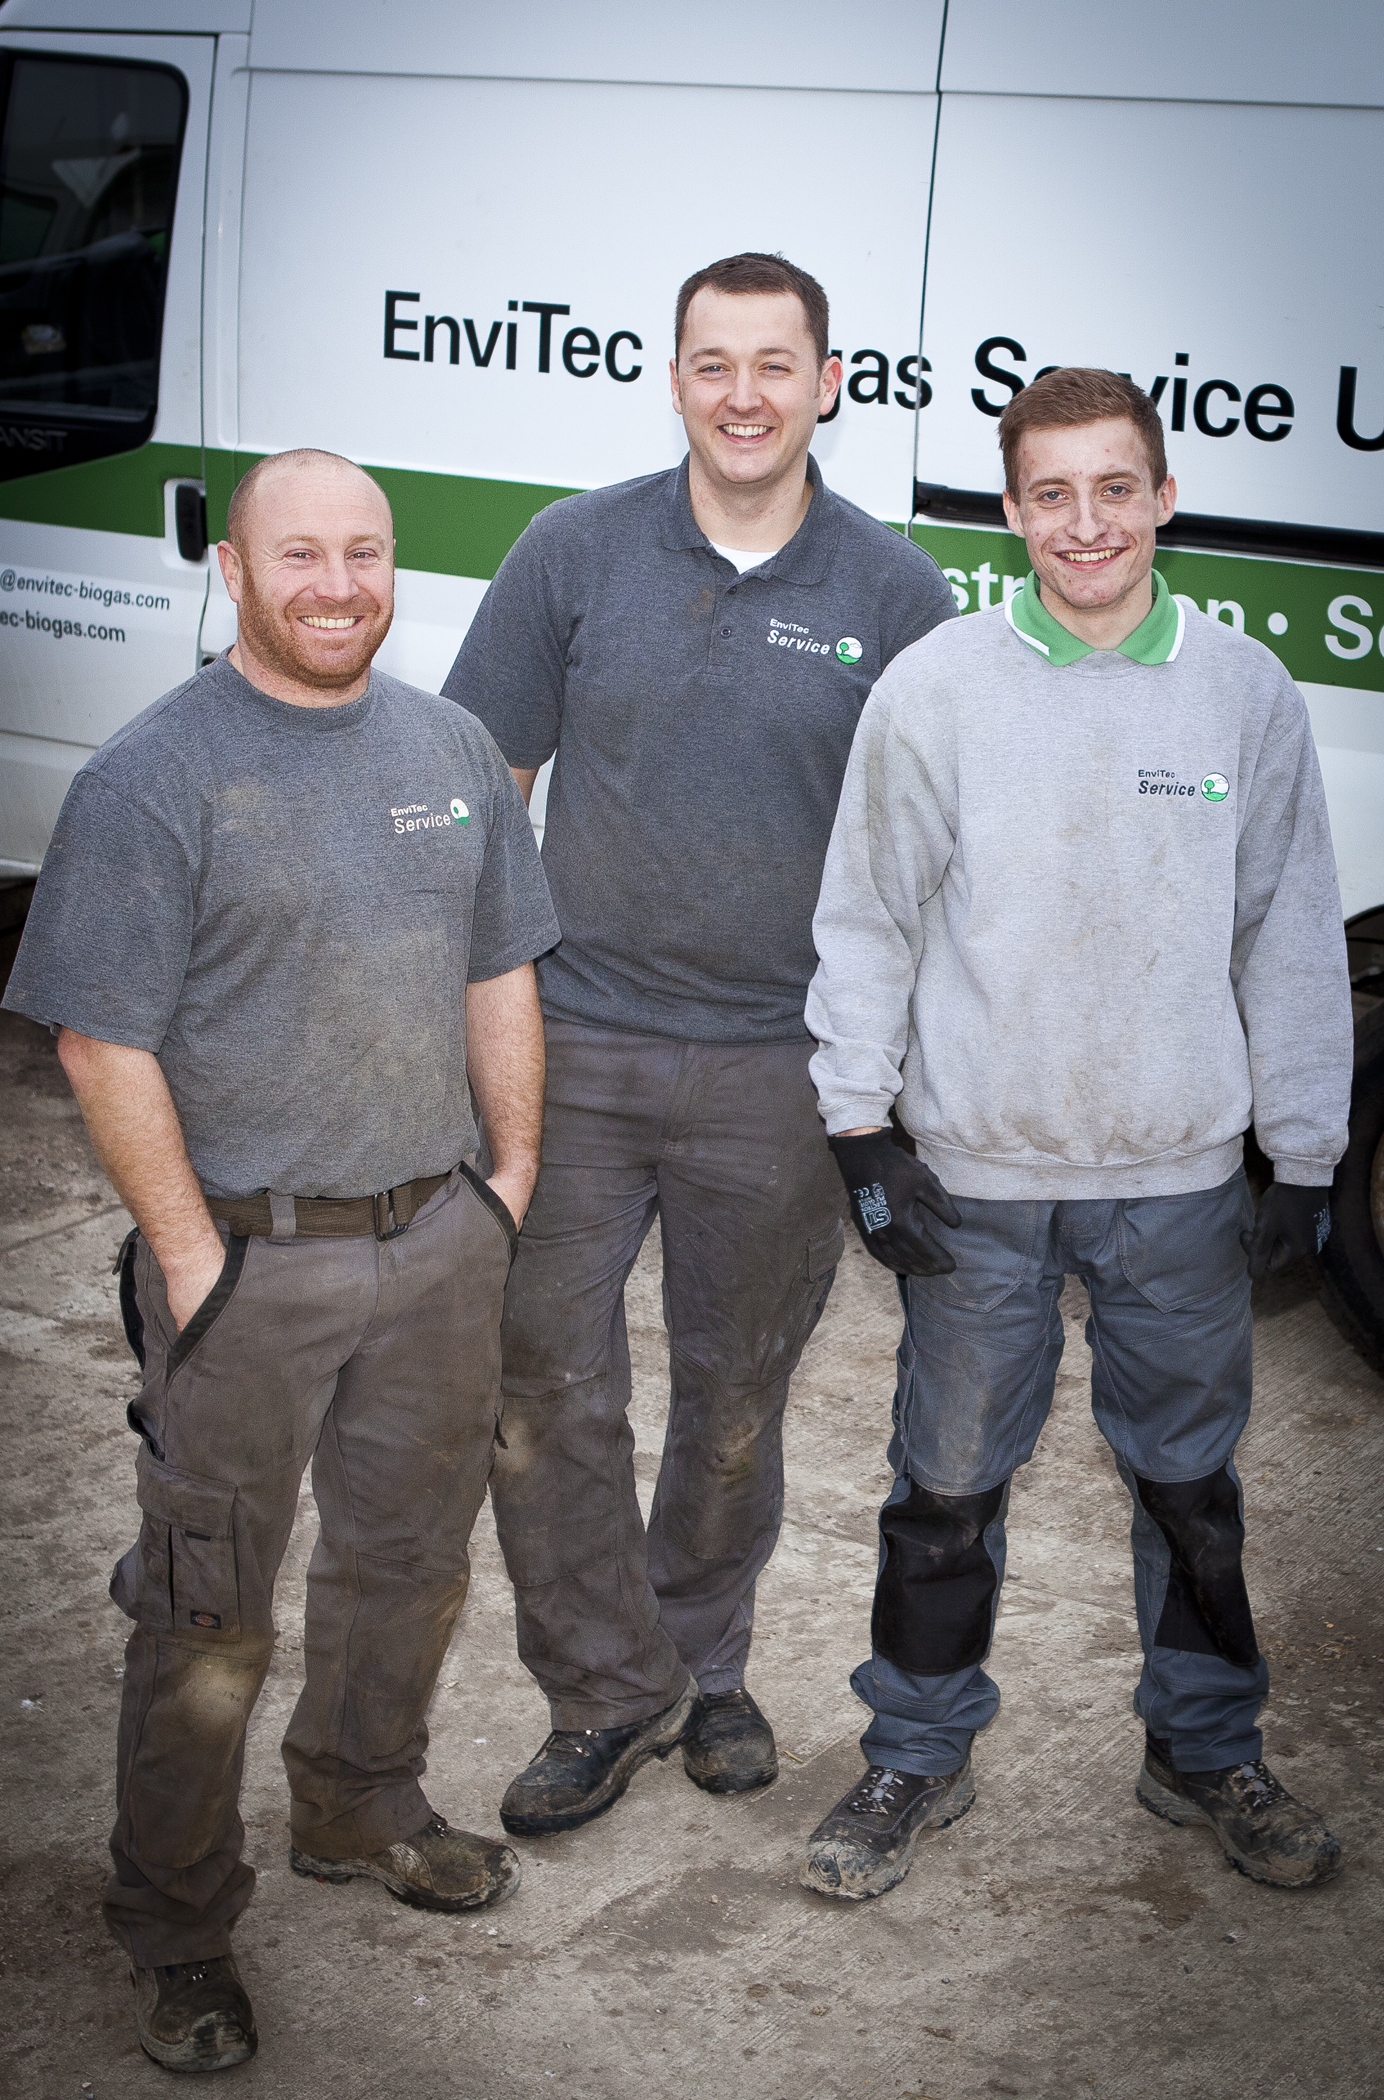 Left to right - Graham Cocking, Philip Mason and apprentice Gary Hurd, all of the EnviTec Biogas UK Service Team